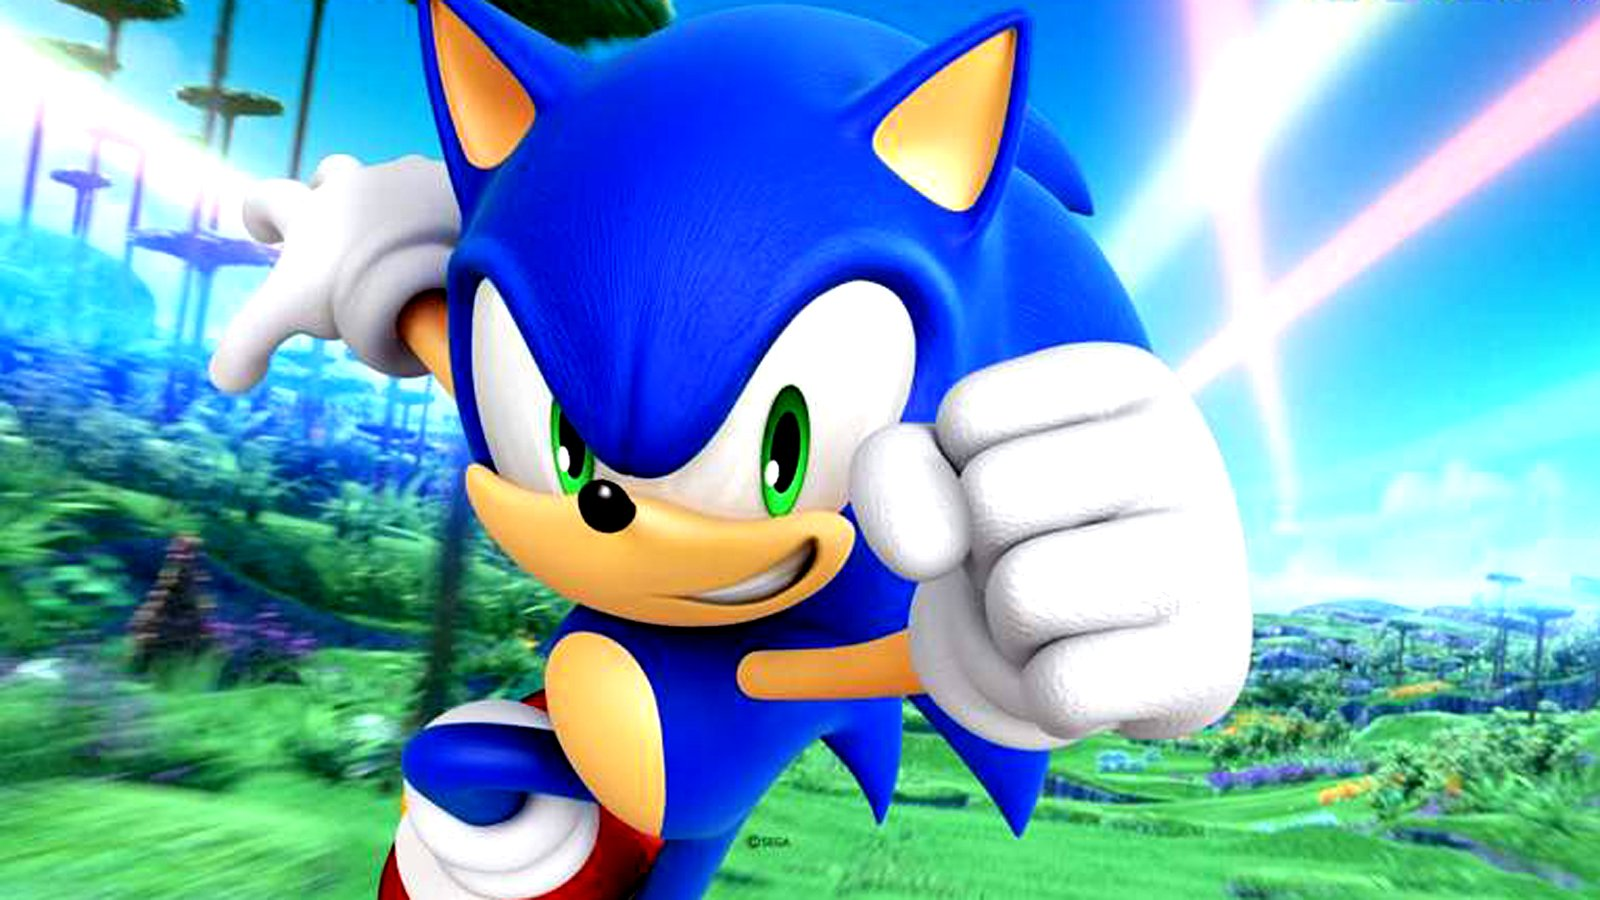 New Sonic game 2022